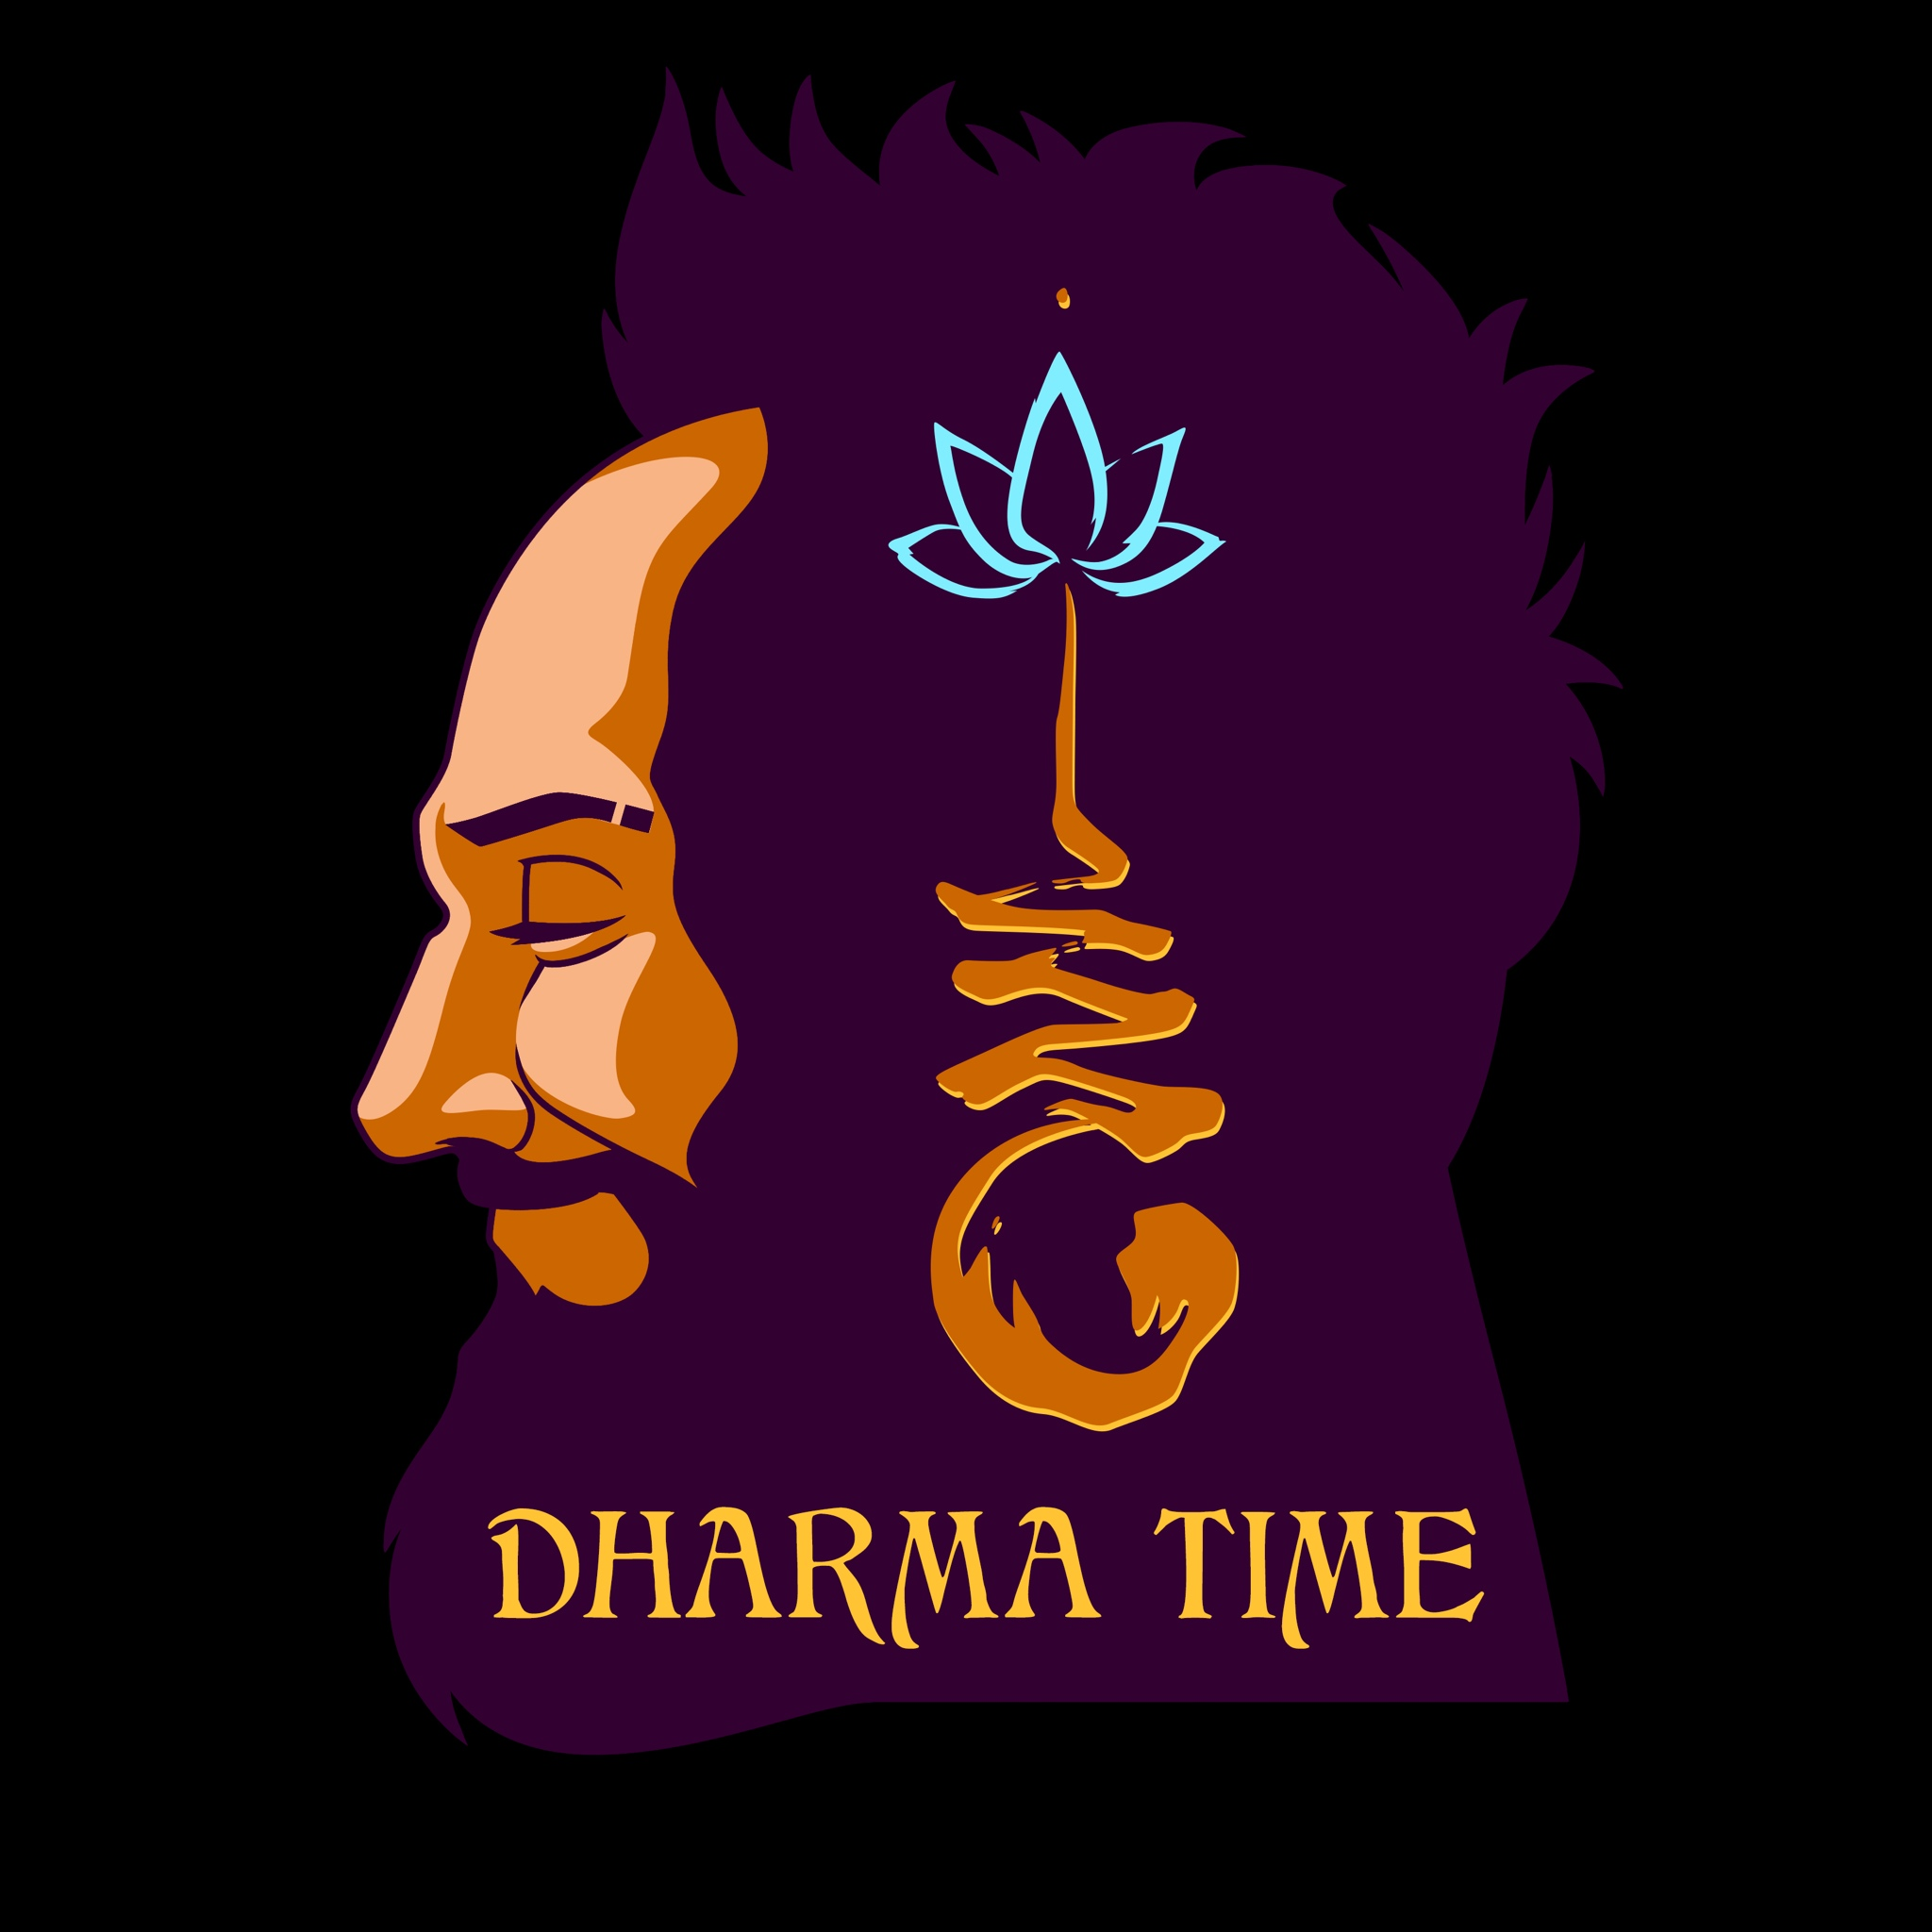 Dharma Time Live Tuesdays 1pm EST - Dharma Time focuses on the spiritual side of life and how to use it to achieve long lasting happiness and enlightenment. Listen to The Dharma Guy as he shares the wisdom he's gained from his own journey in life and into the philosophy of Buddhism. As a one man show, this hour promises to be intimate and thought provoking with the occasional special guest host.